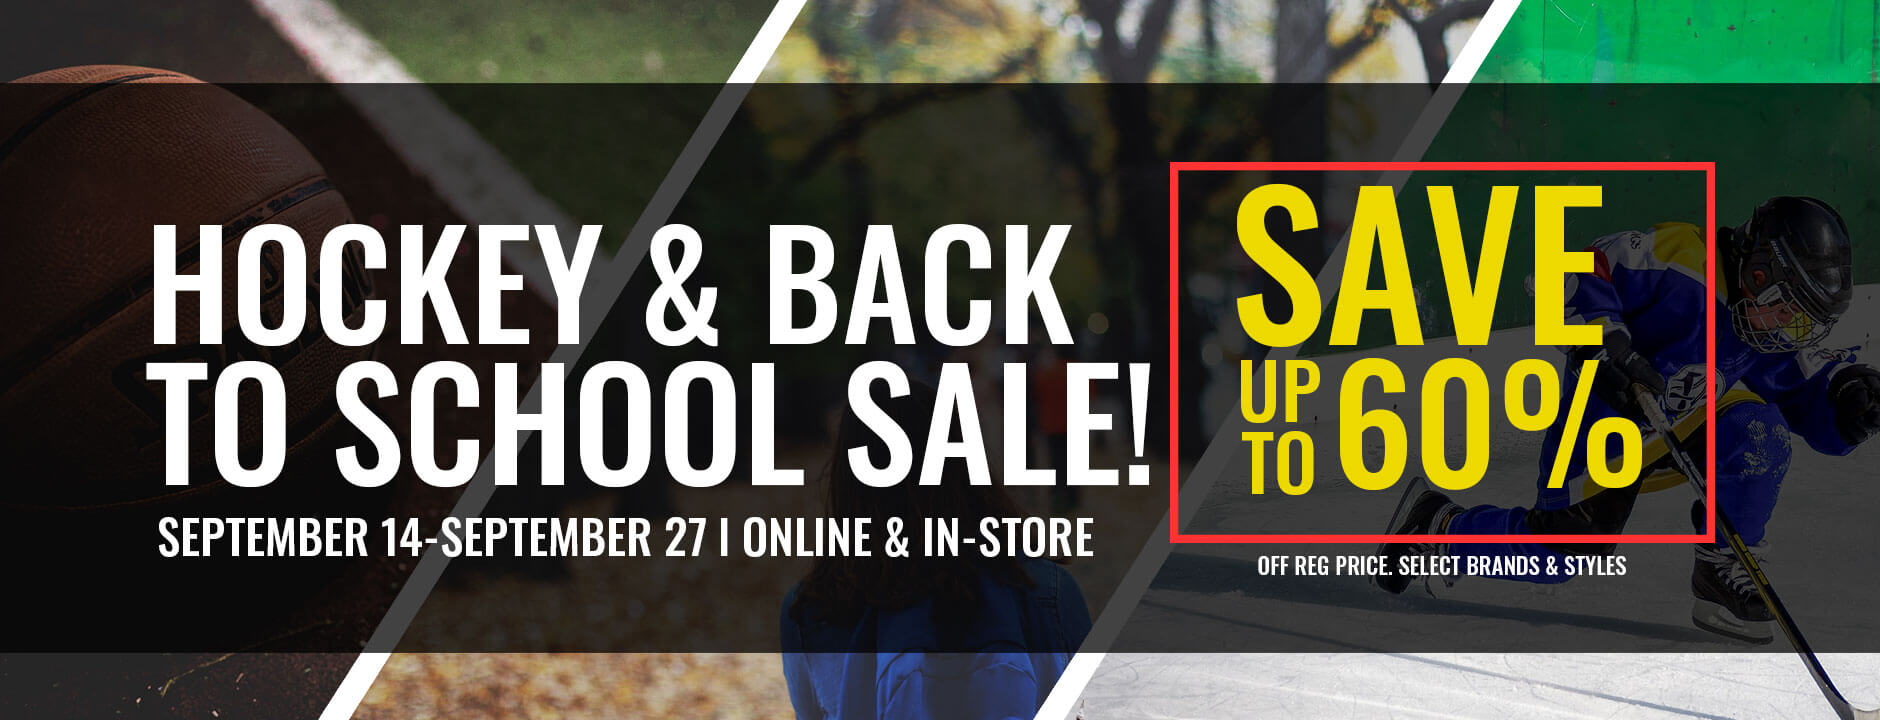 Hockey & Back To School Sale